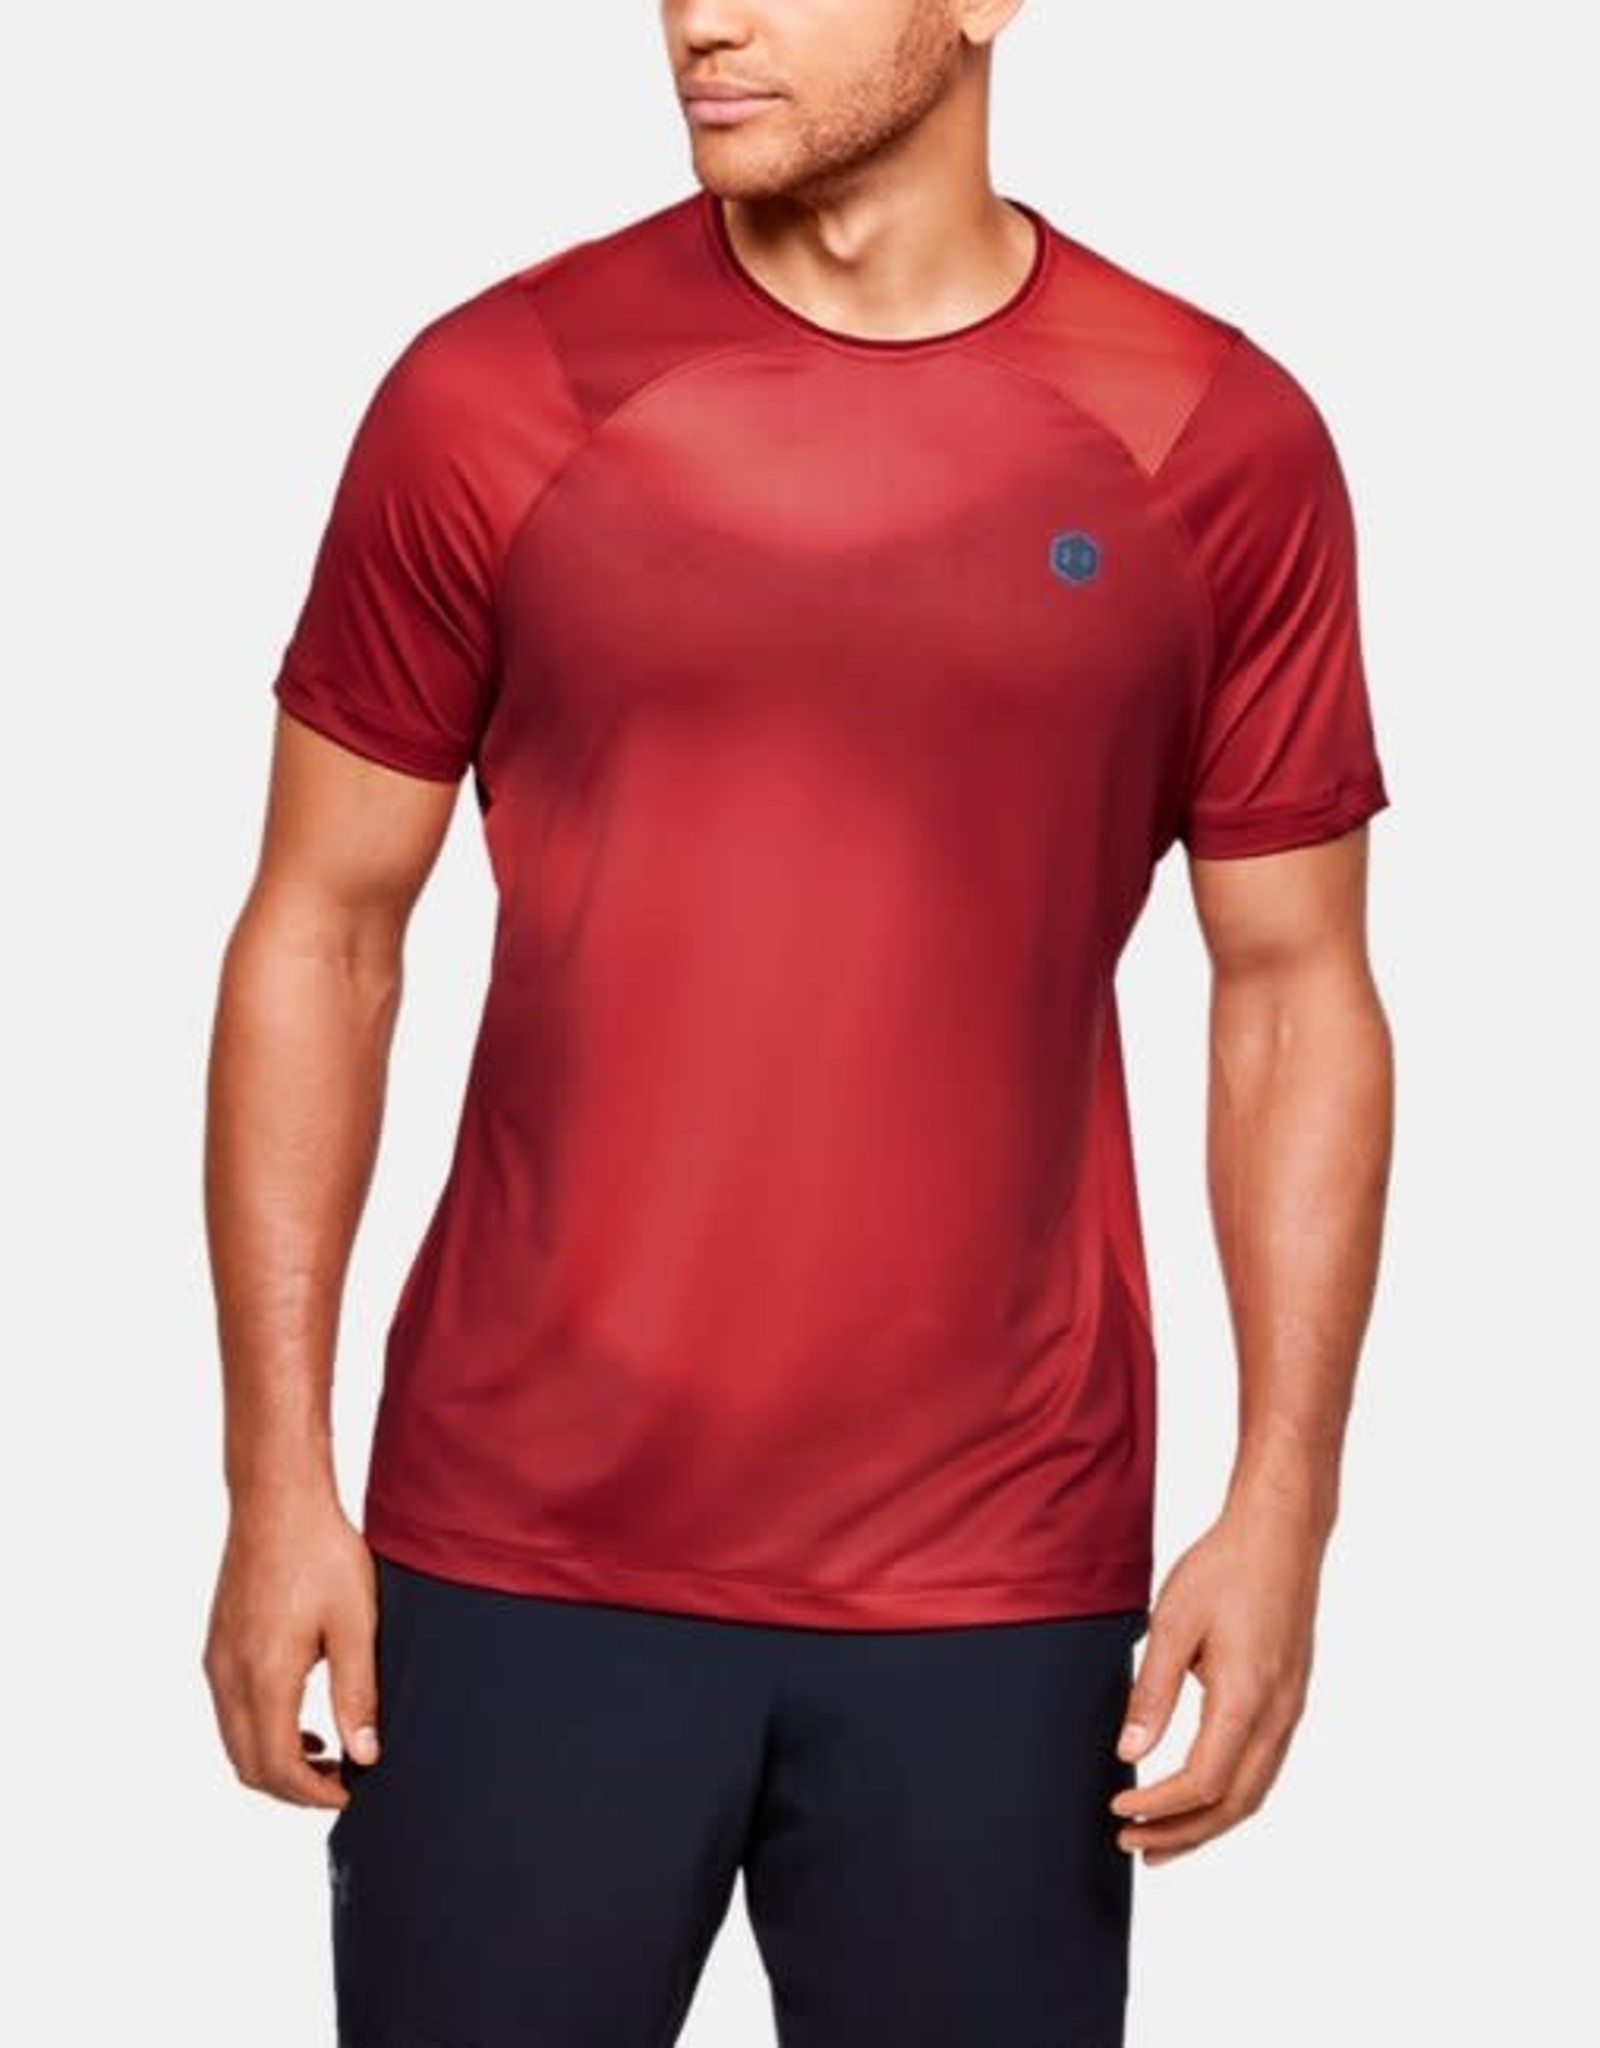 Under Armour Rush surge tee - deep red